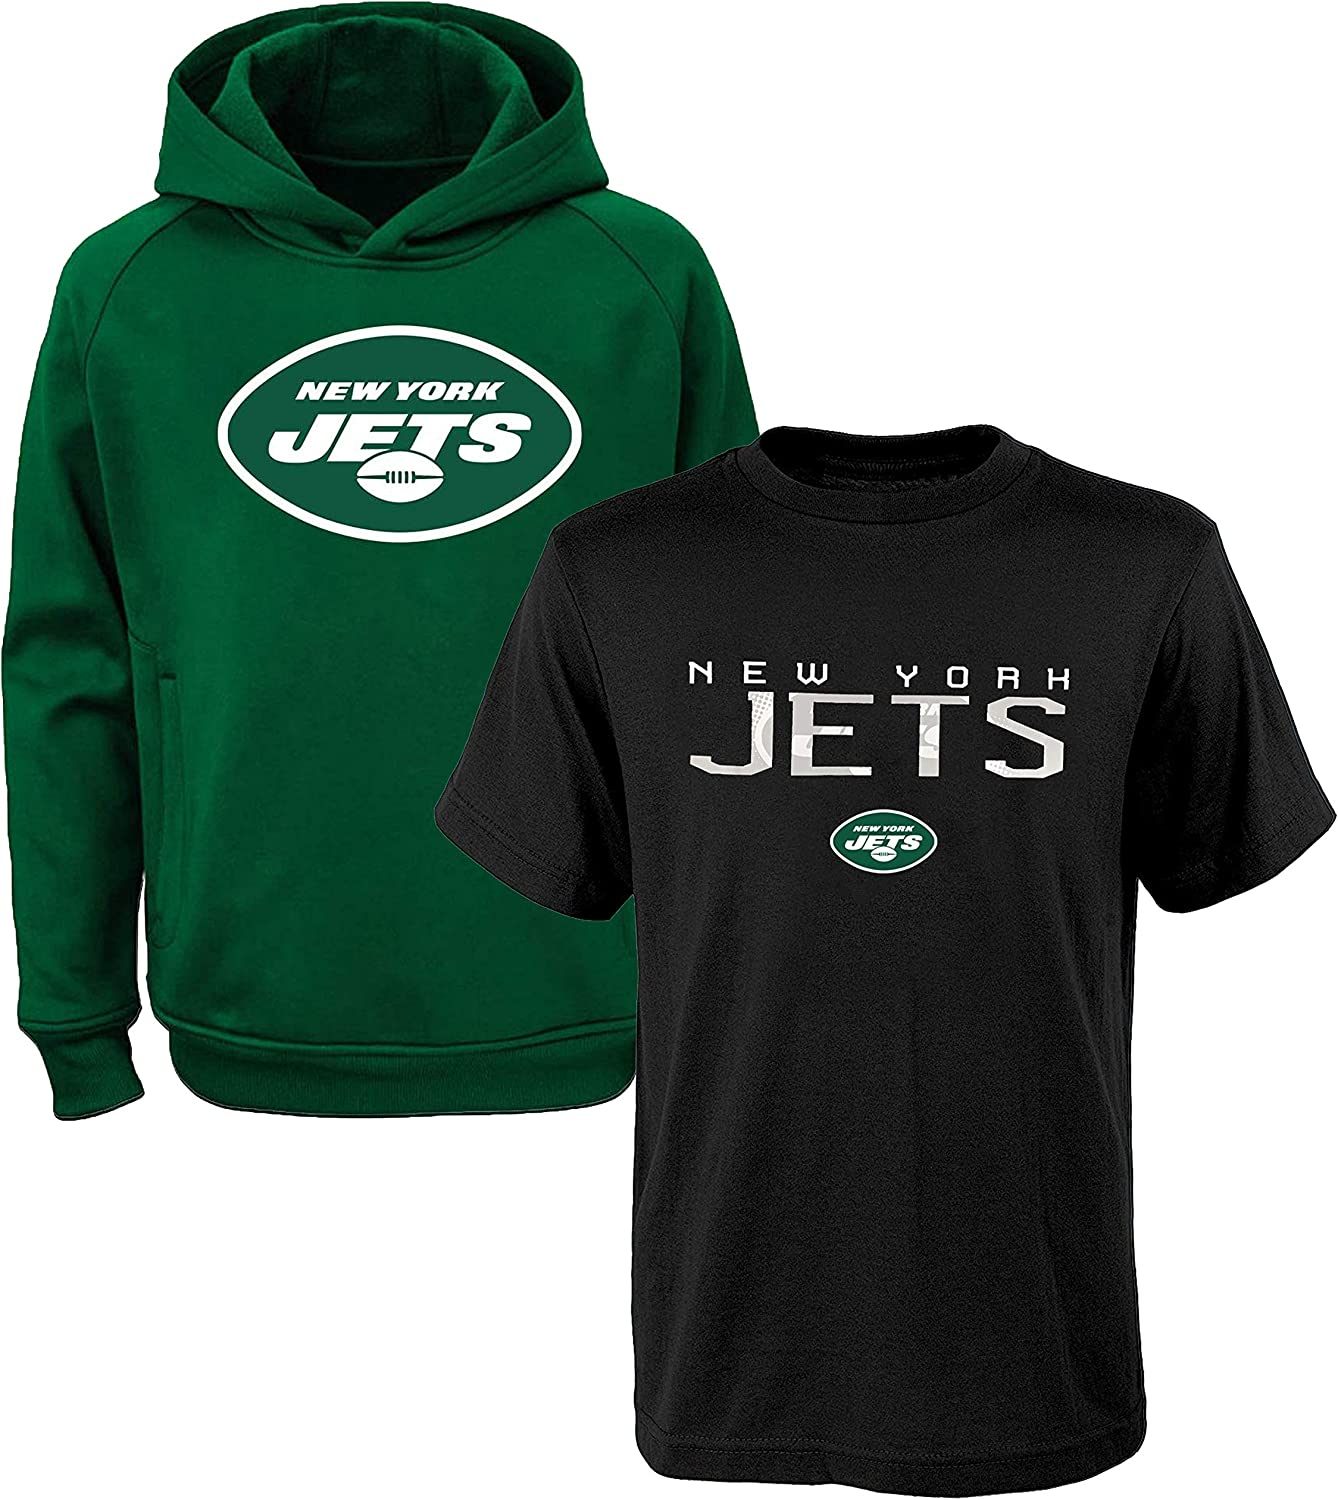 NFL Youth 8-20 Polyester Performance Primary Logo Hoodie & T-Shirt 2 Pack Set